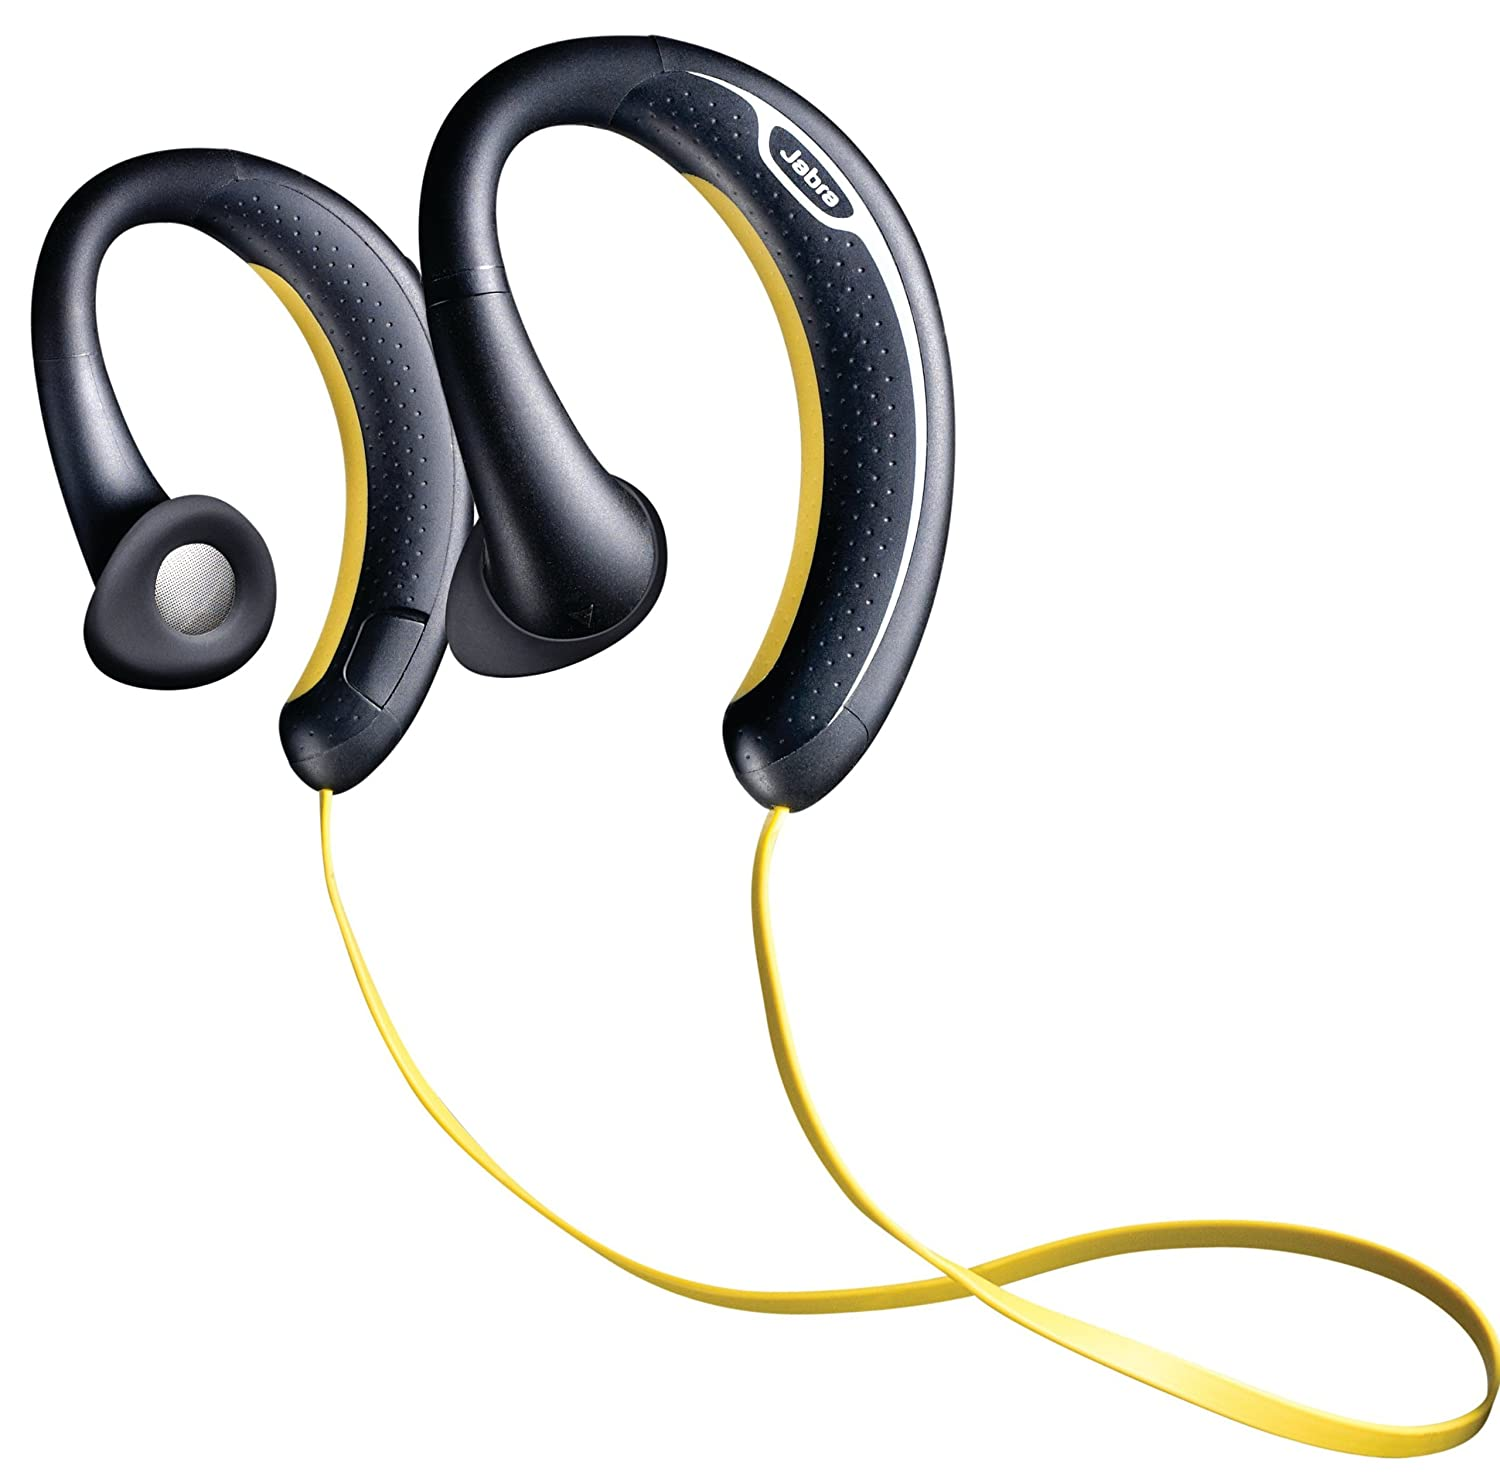 82a2b93578f Amazon.com: Jabra SPORT Bluetooth Stereo Headset - Black/Yellow  (Discontinued by Manufacturer): Cell Phones & Accessories